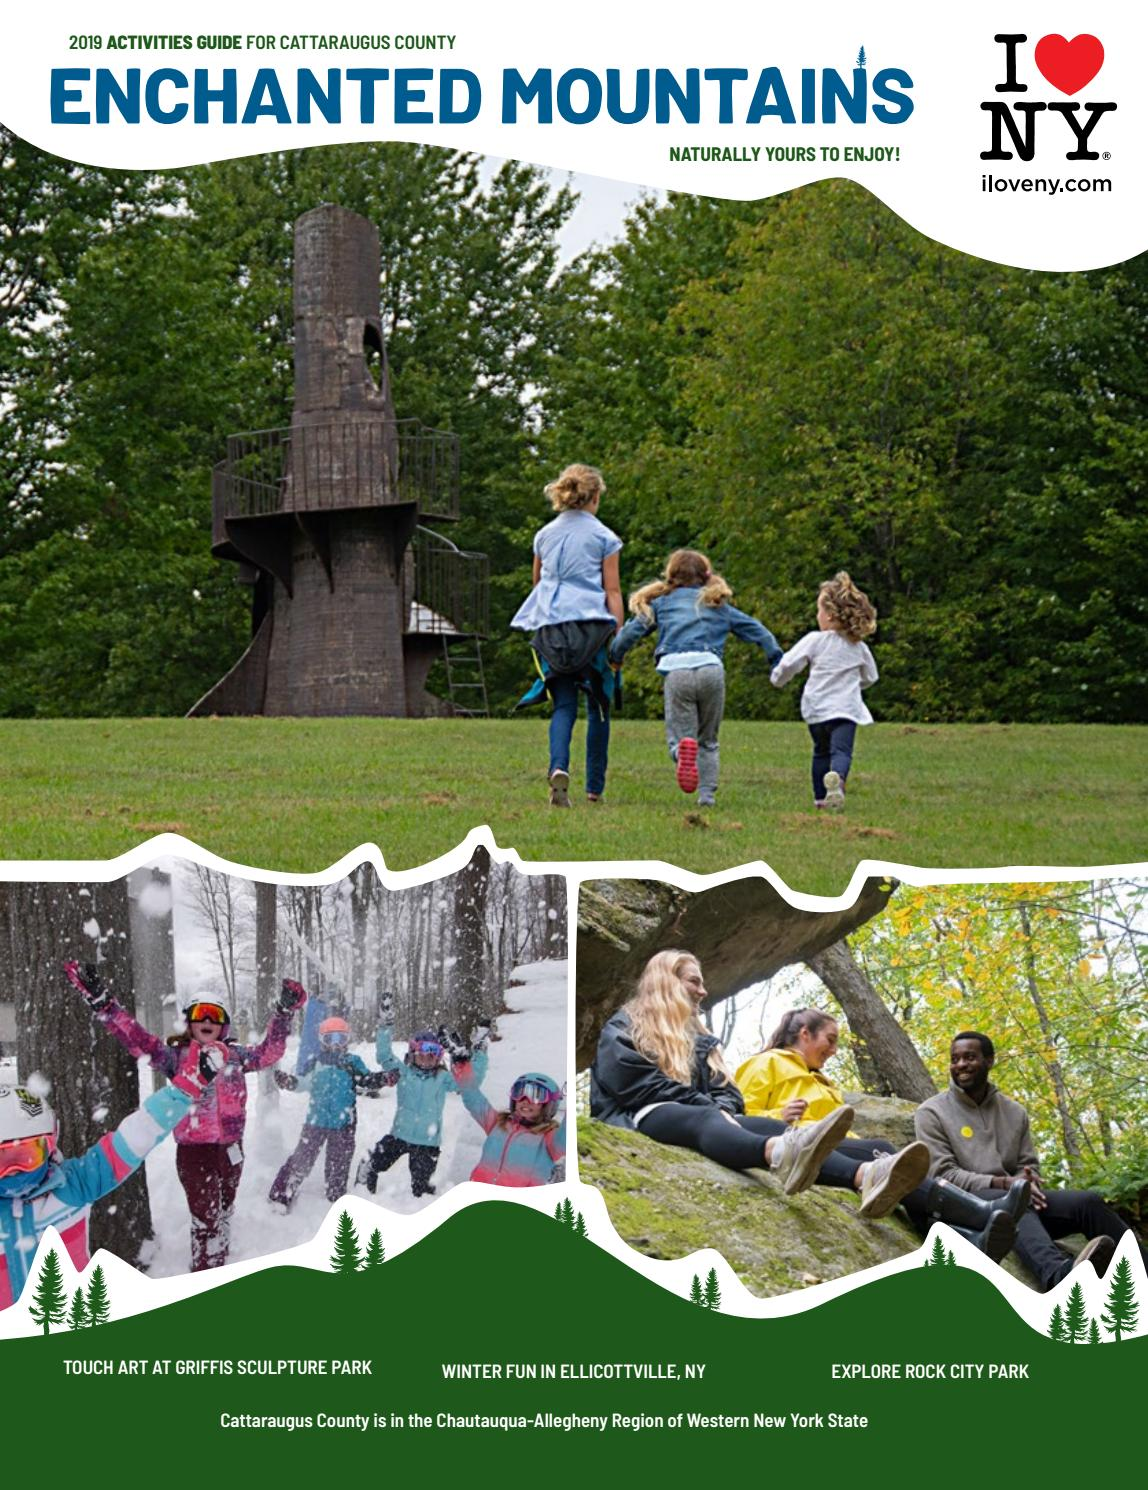 9c5333ef 2019 Enchanted Mountains Activities Guide by Cattaraugus County - issuu